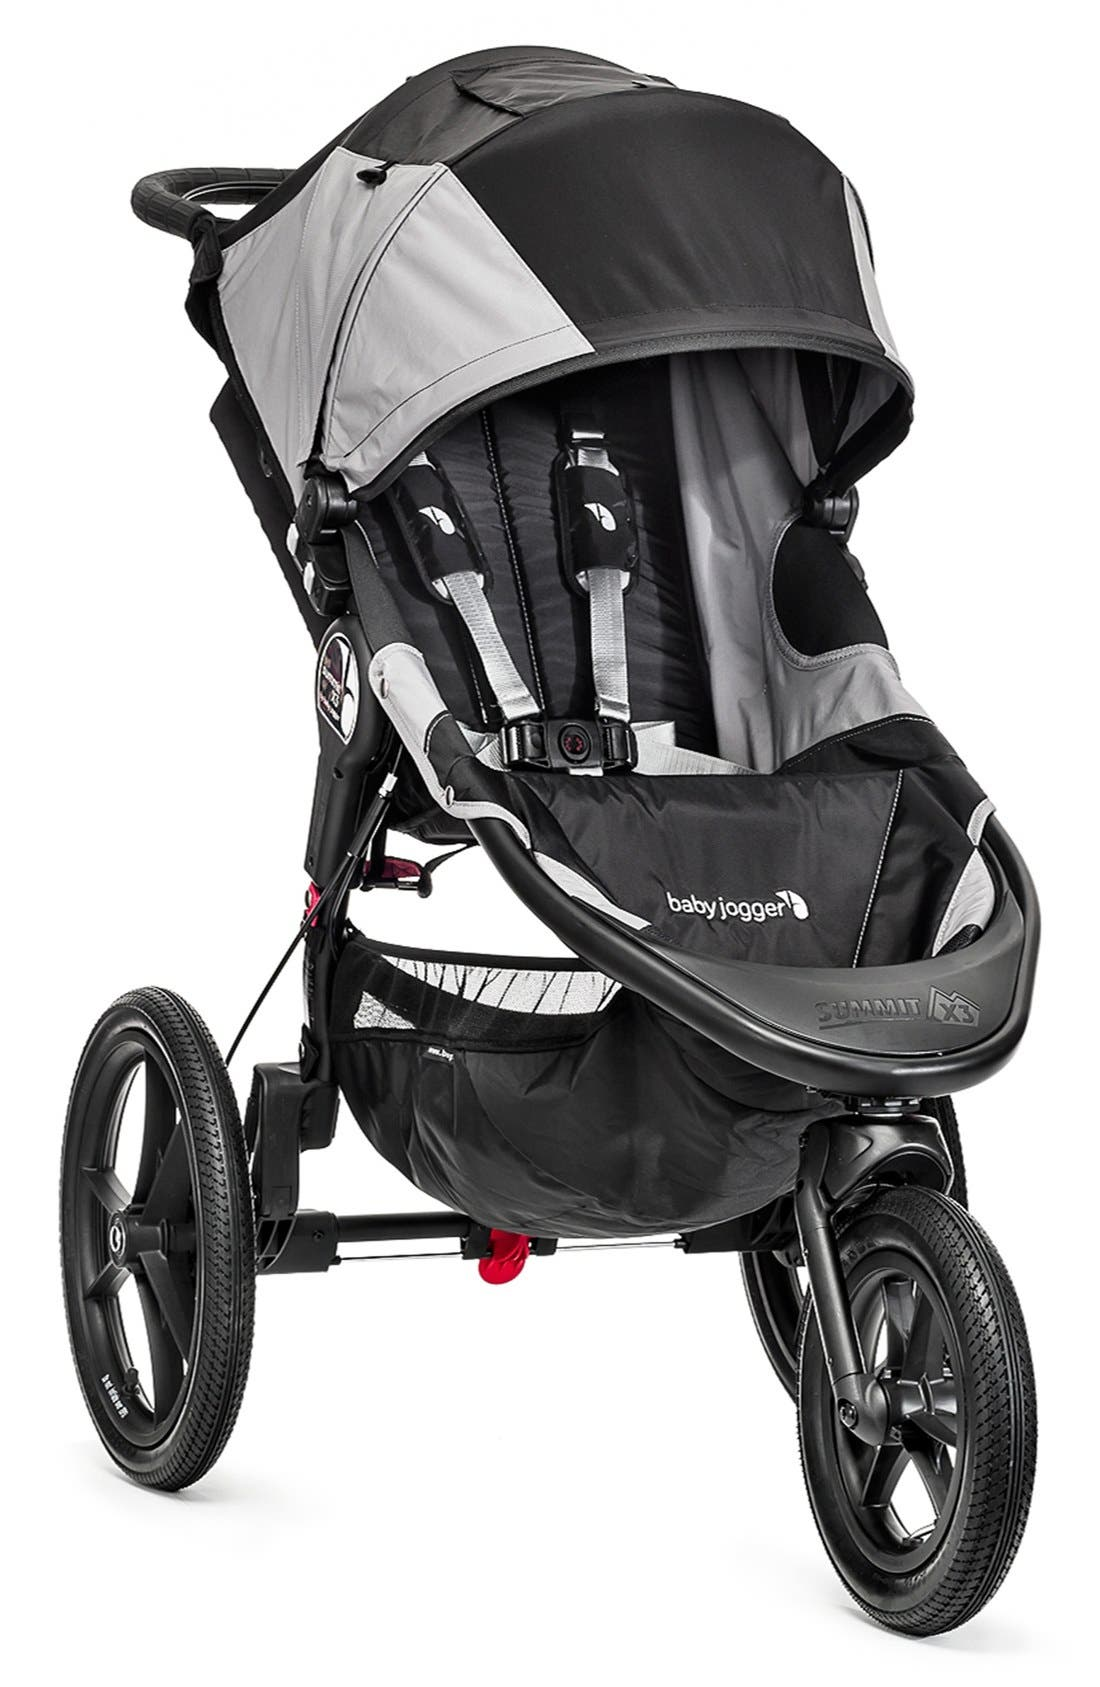 Alternate Image 1 Selected - Baby Jogger 'Summit X3' Single Jogging Stroller